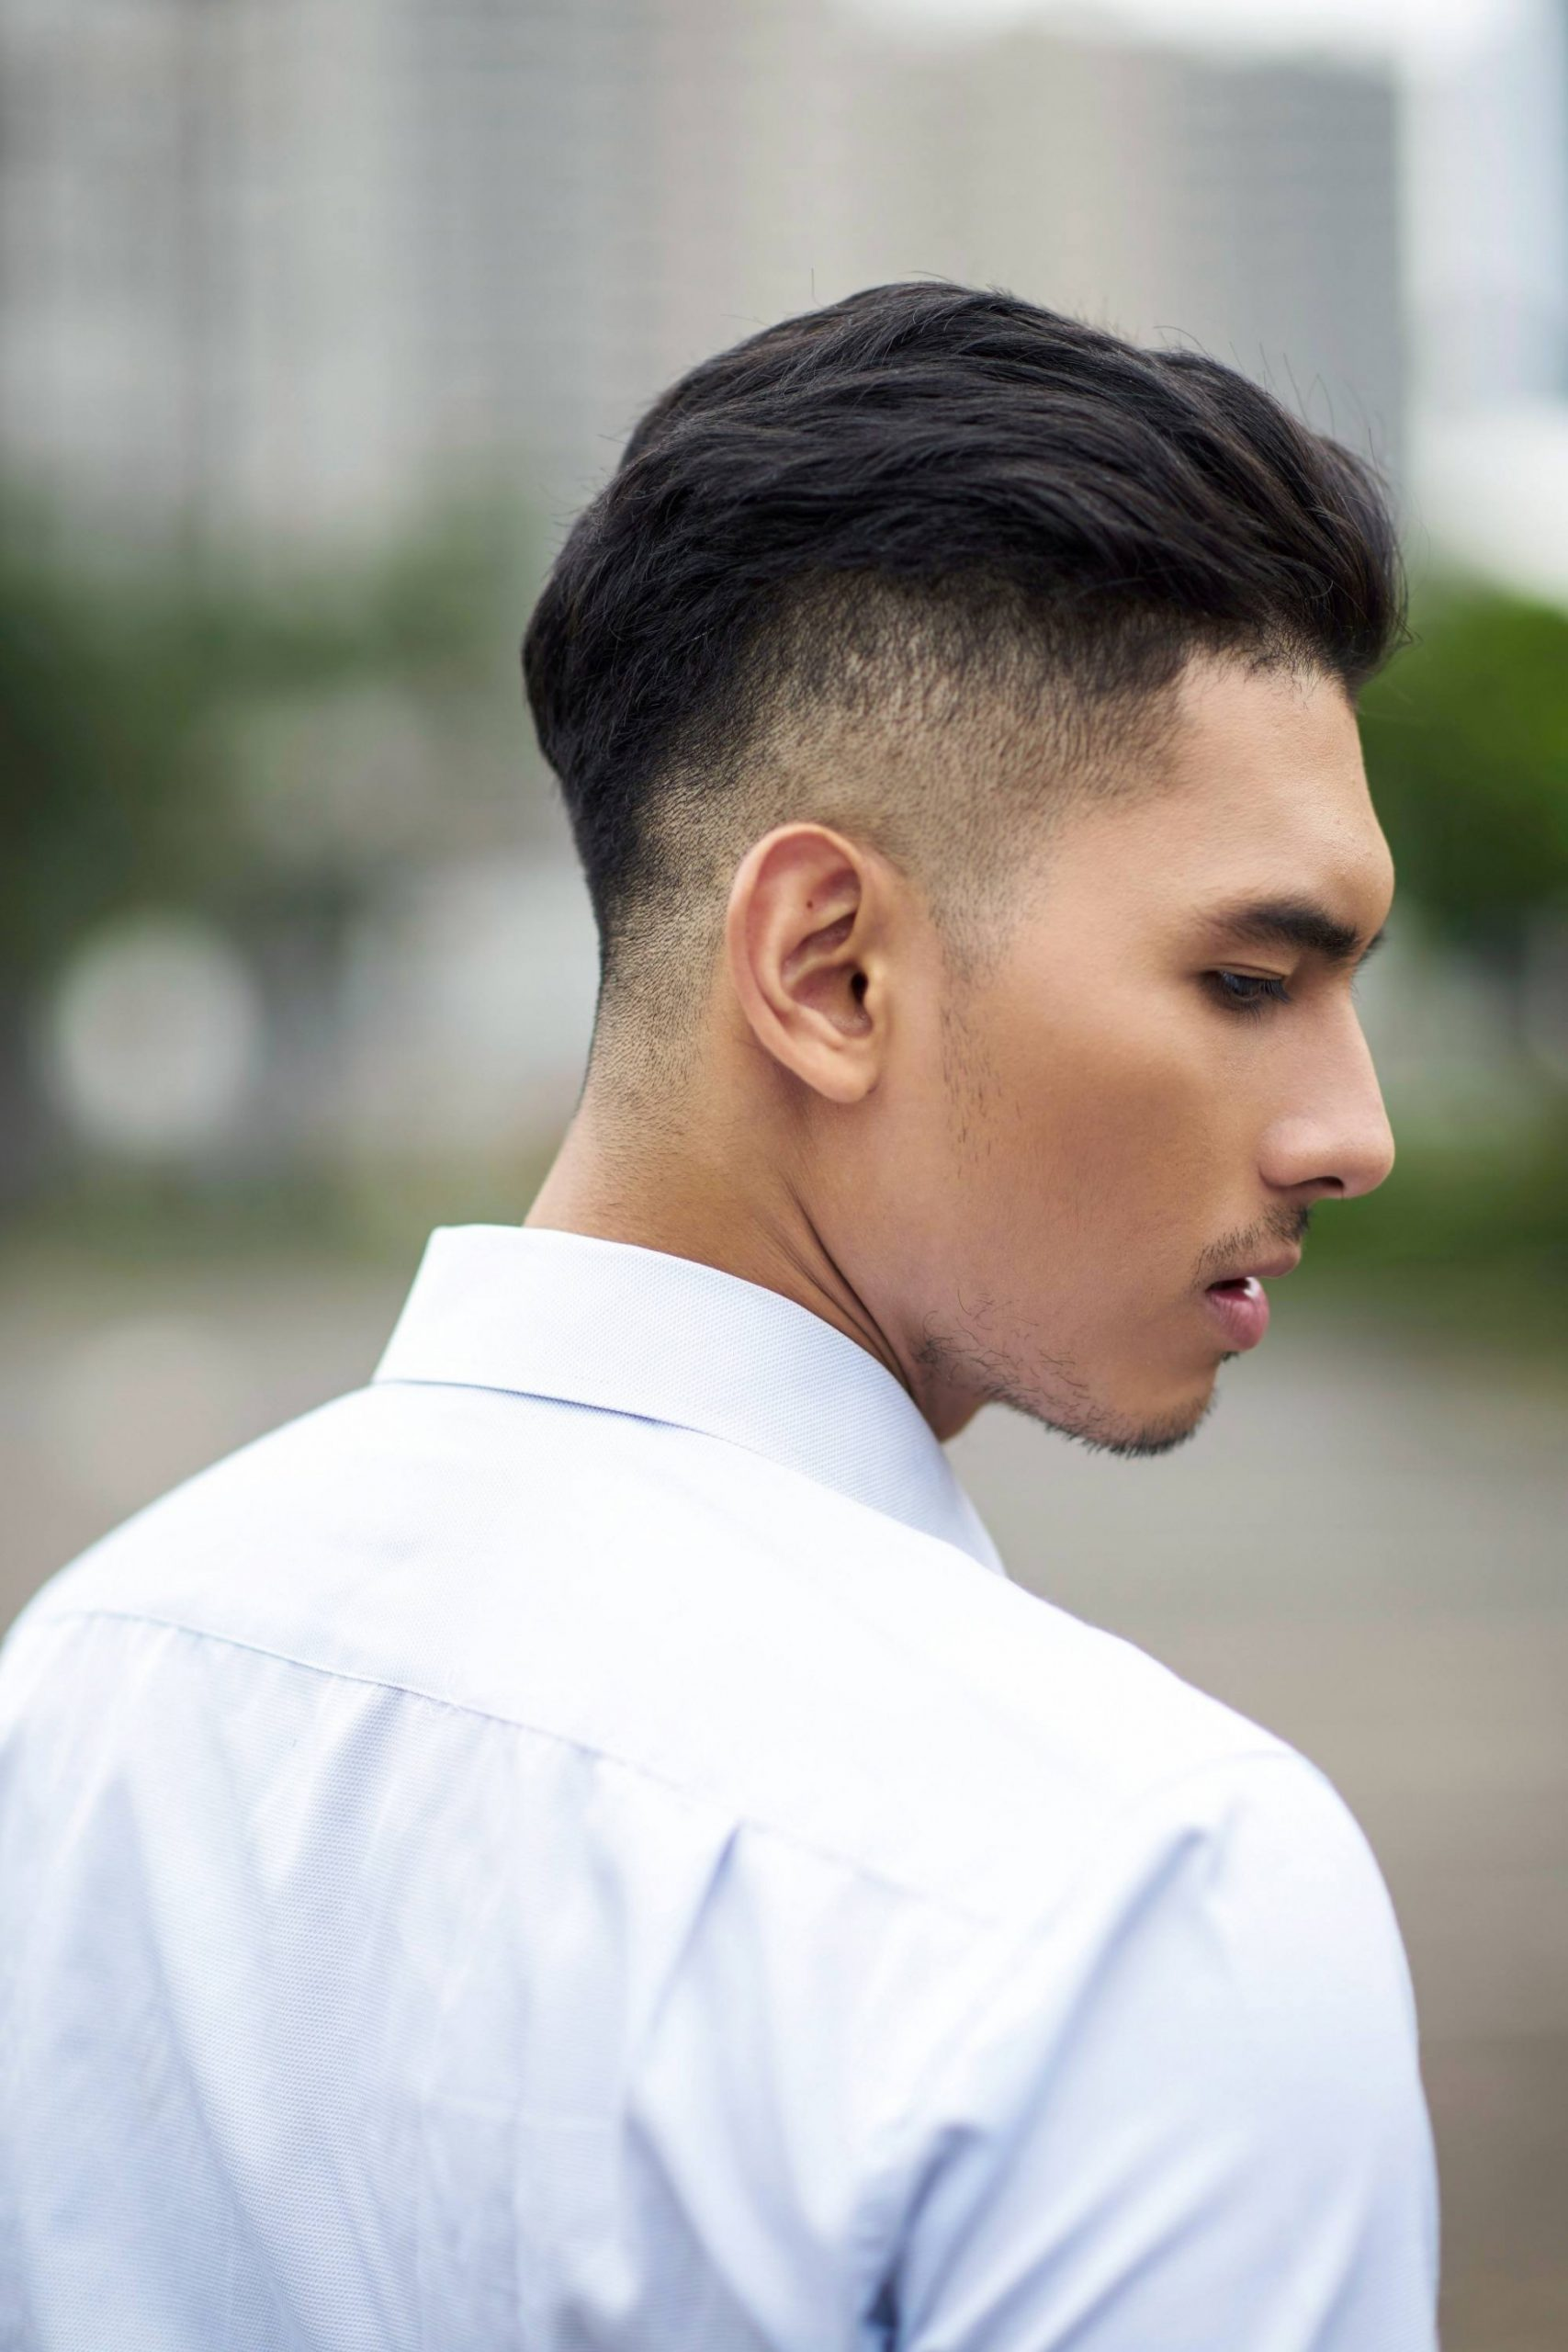 Best Hairstyles For Men With Round Faces All Things Hair PH Buzz Cut Round Face